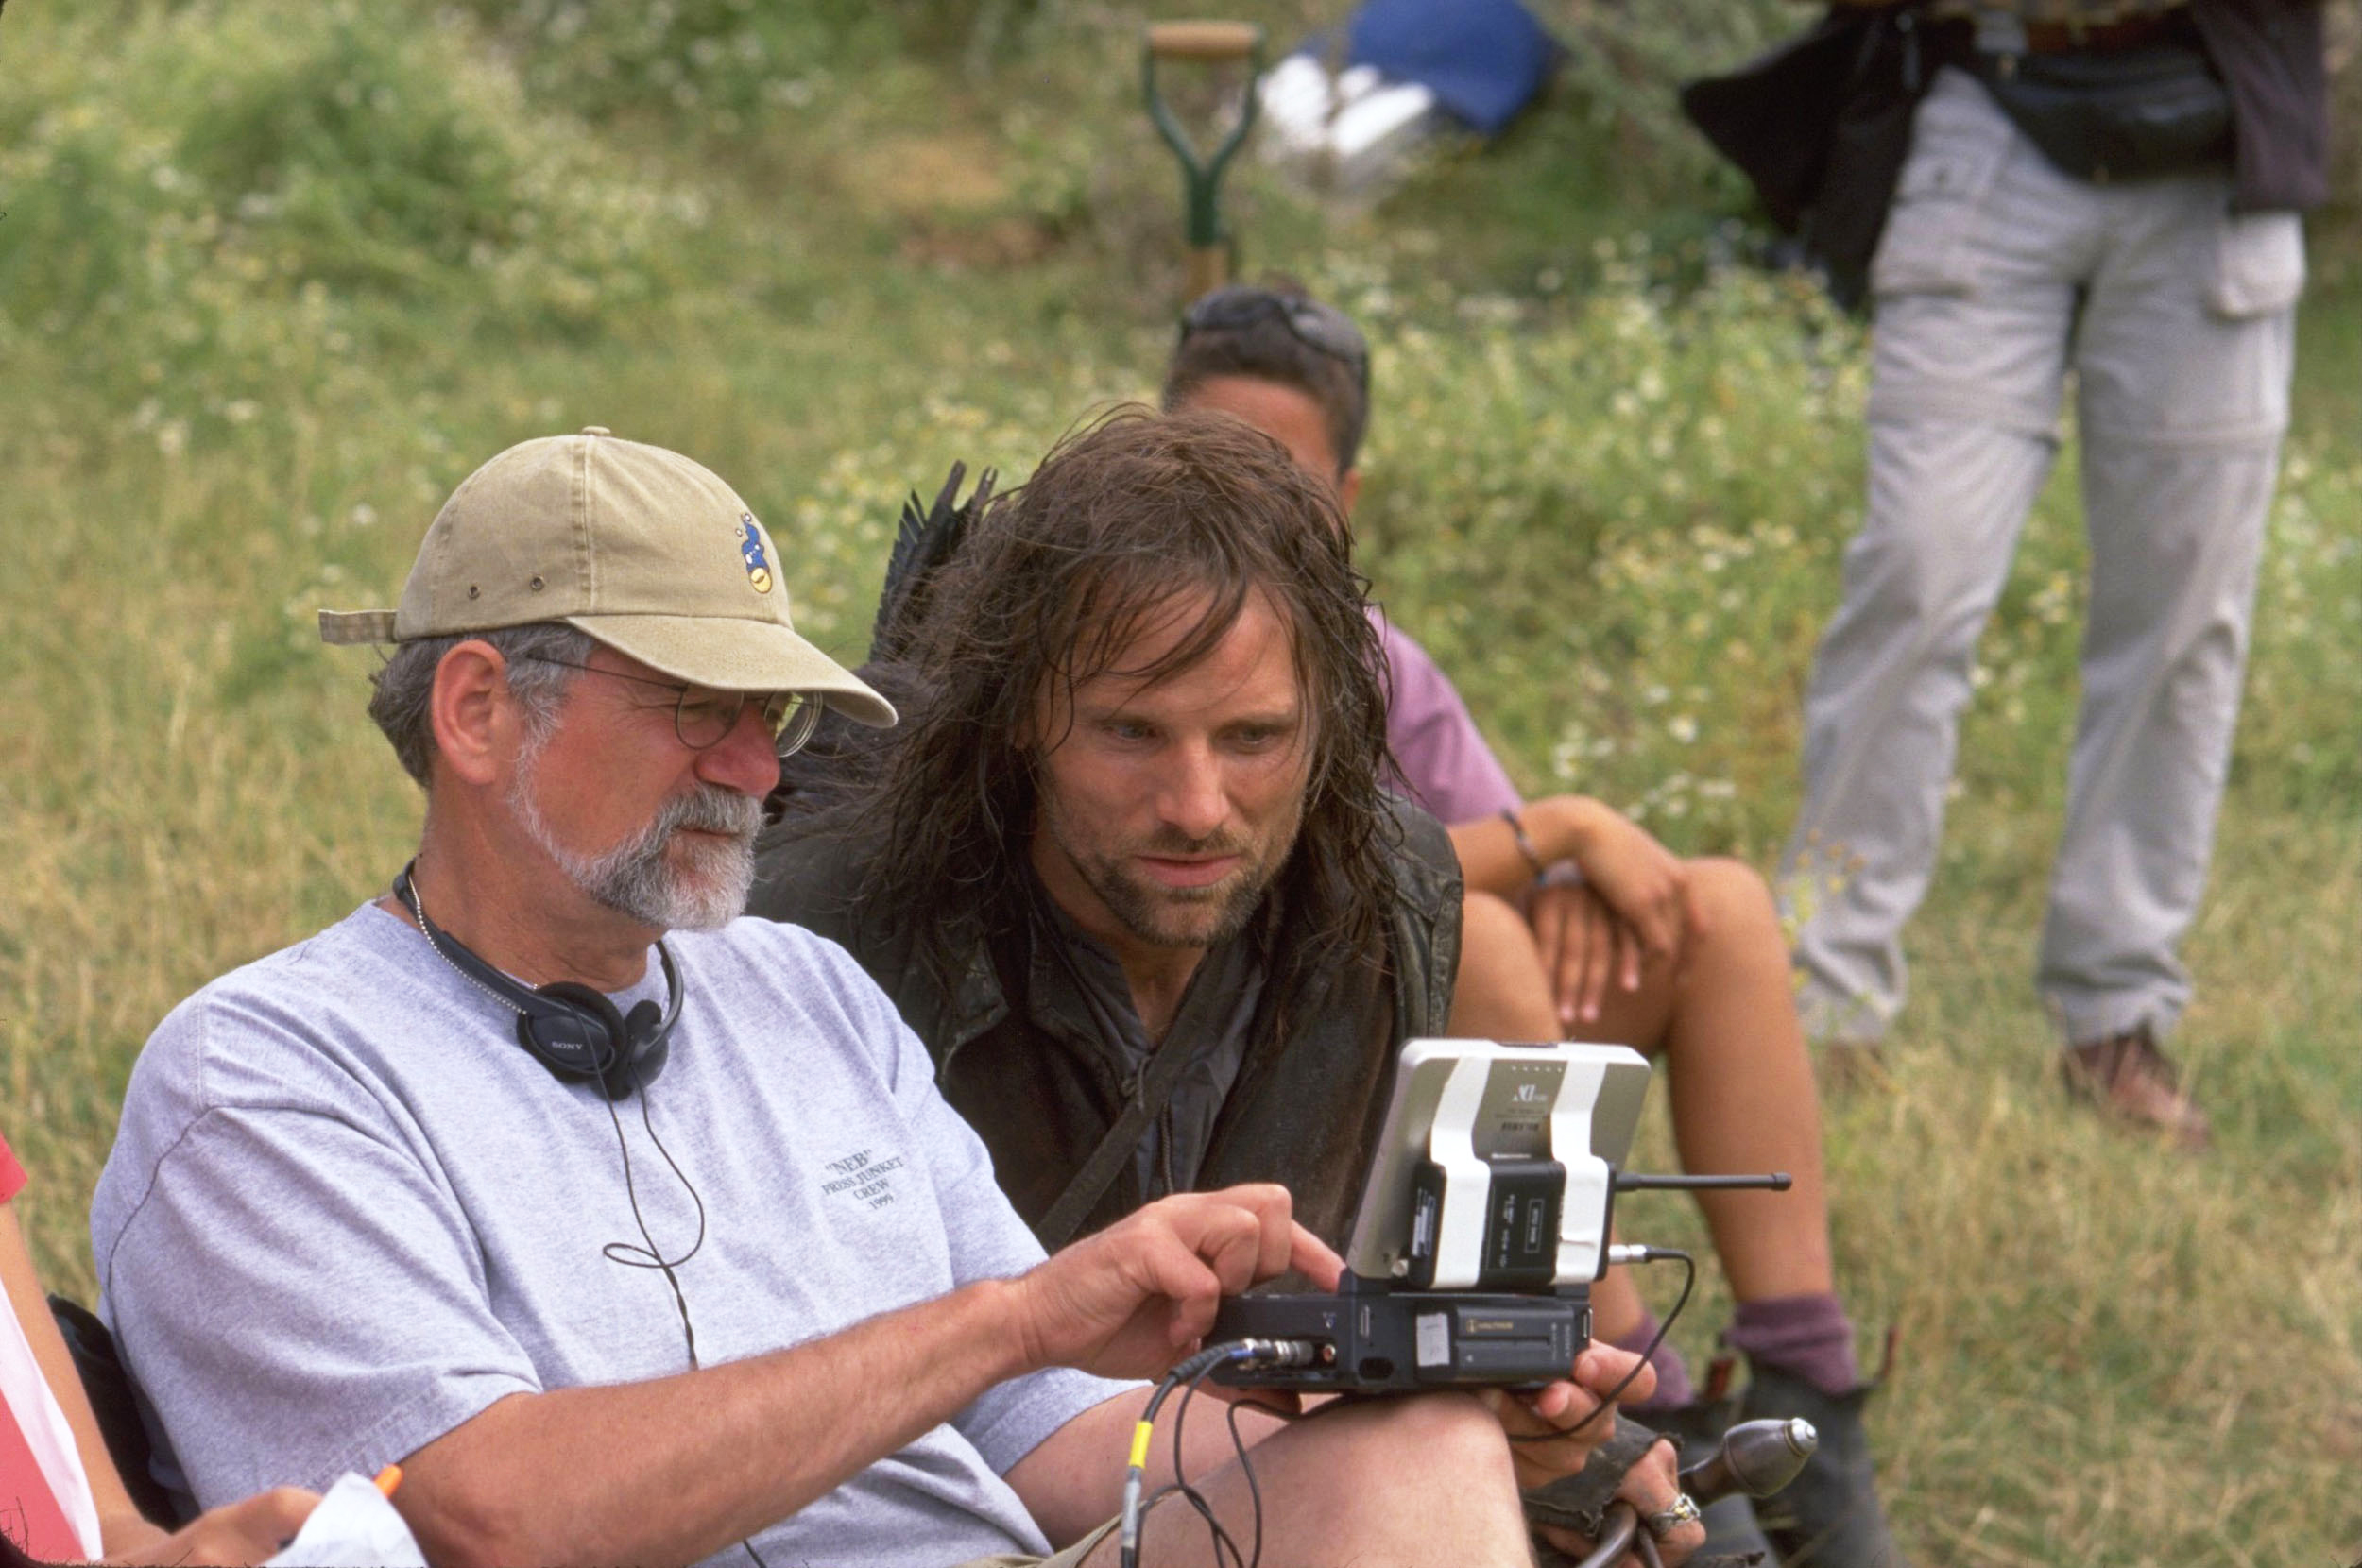 Viggo Mortensen, right, filming The Lord of the Rings: The Two Towers, 2002.